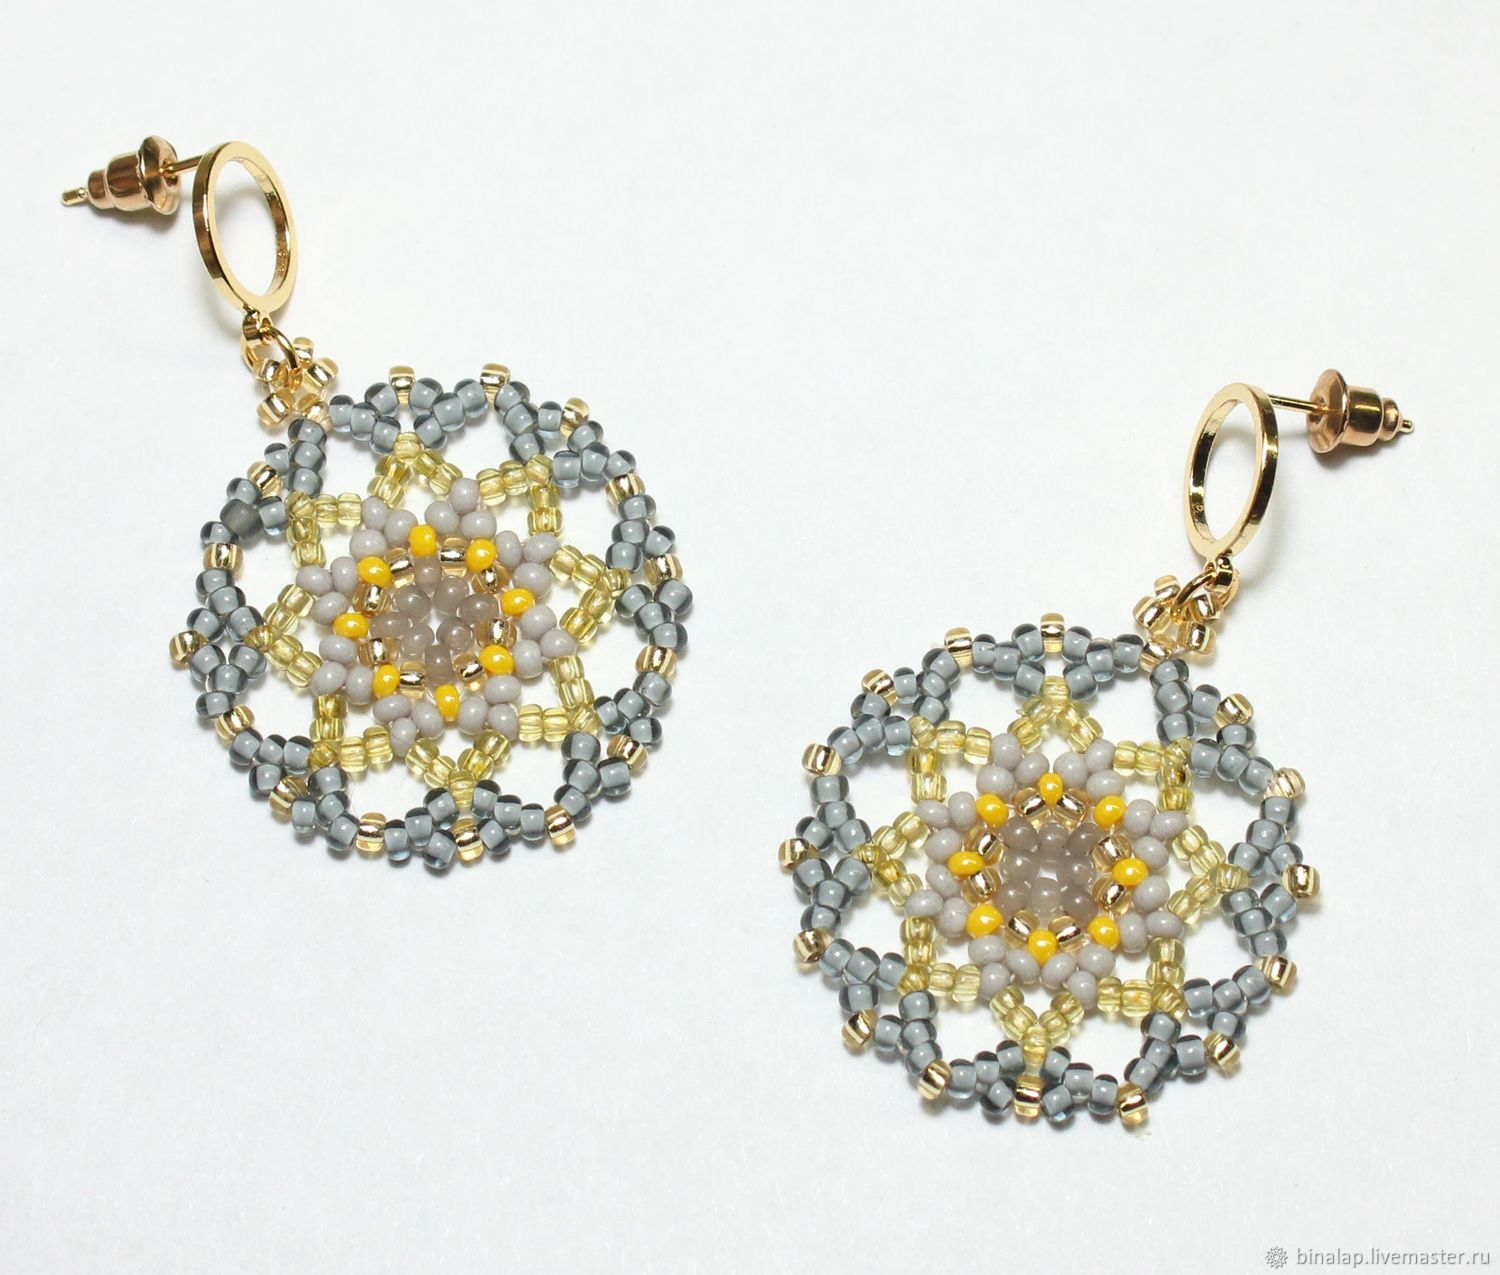 Round gray-yellow earrings, Earrings, Moscow,  Фото №1